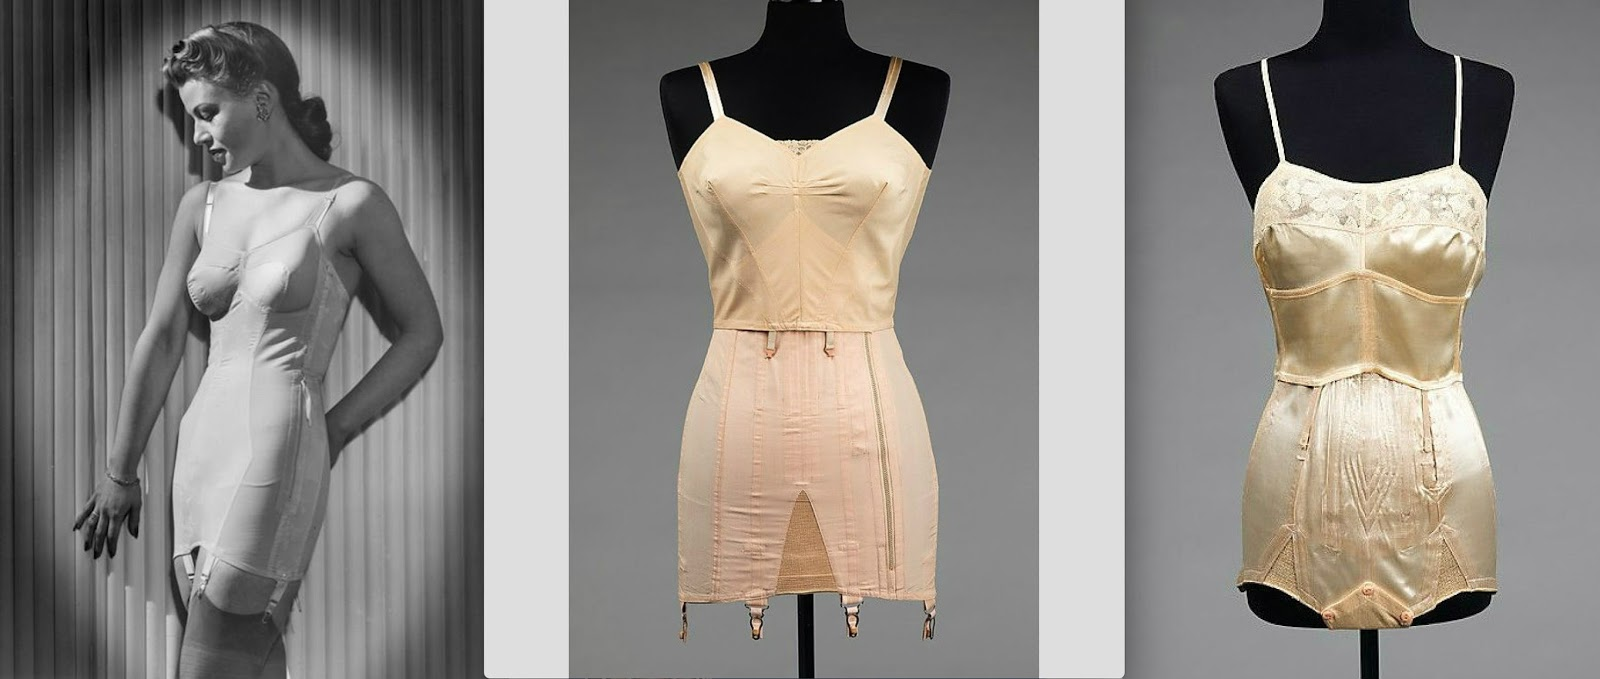 9a826d6c8 The full body girdle...Long-line bra   girdle featuring a streamlined zip  closure...The panty girdle